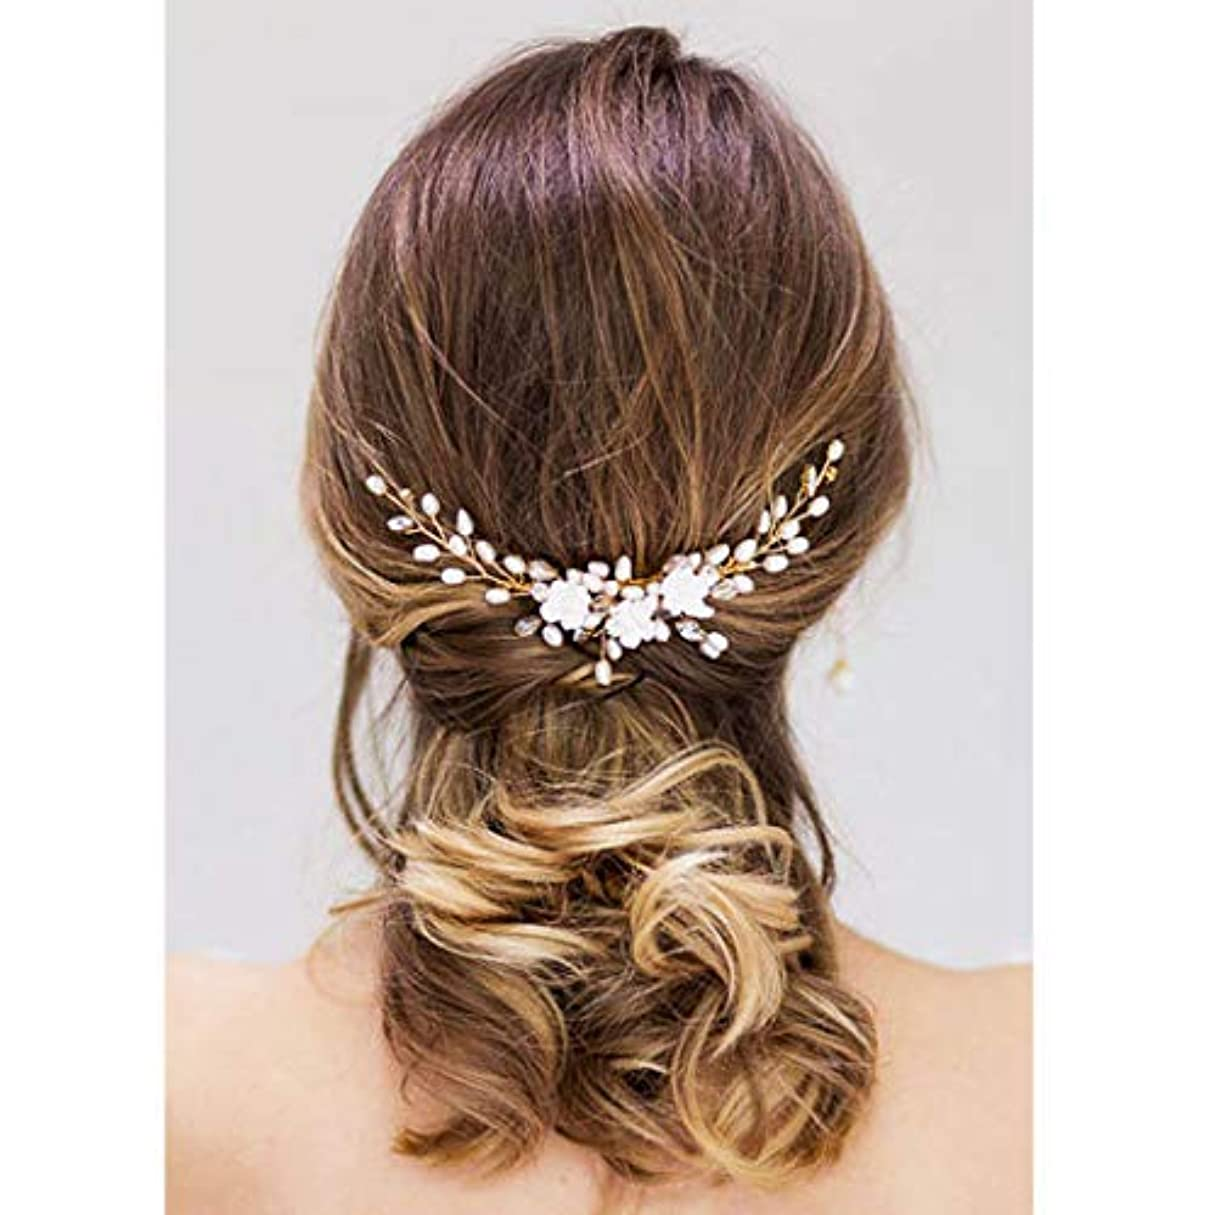 Drecode Bride Wedding Hair Comb Flower Headpiece Pearl Rhinestone Hair Accessories for Women and Girls [並行輸入品]